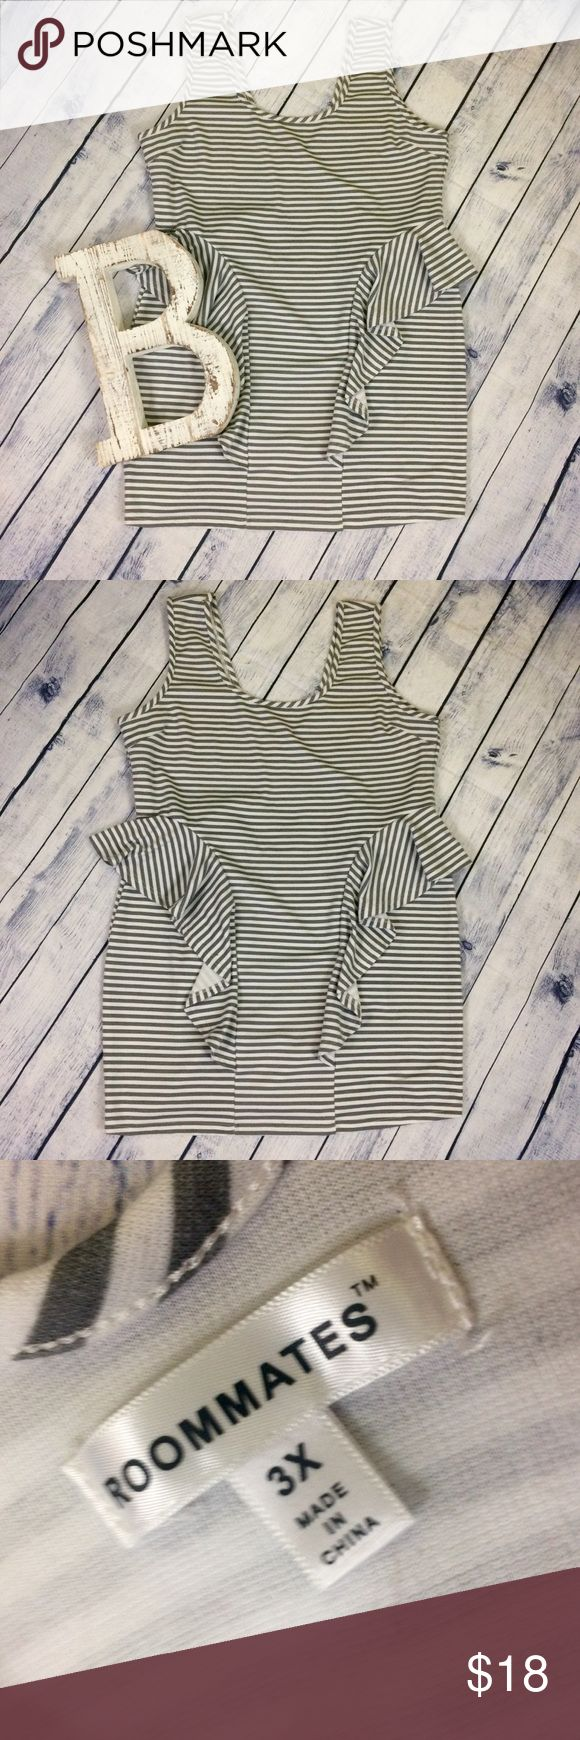 Plus size grey and white bodycon dress with ruffle Plus size grey and white stripes bodycon dress with ruffles!! Size 3x! Excellent condition! Has small make up stain inside neckline that cannot be seen when worn. Unique body contour dress! Mak me an offer! 20% off all bundles roommates Dresses Mini